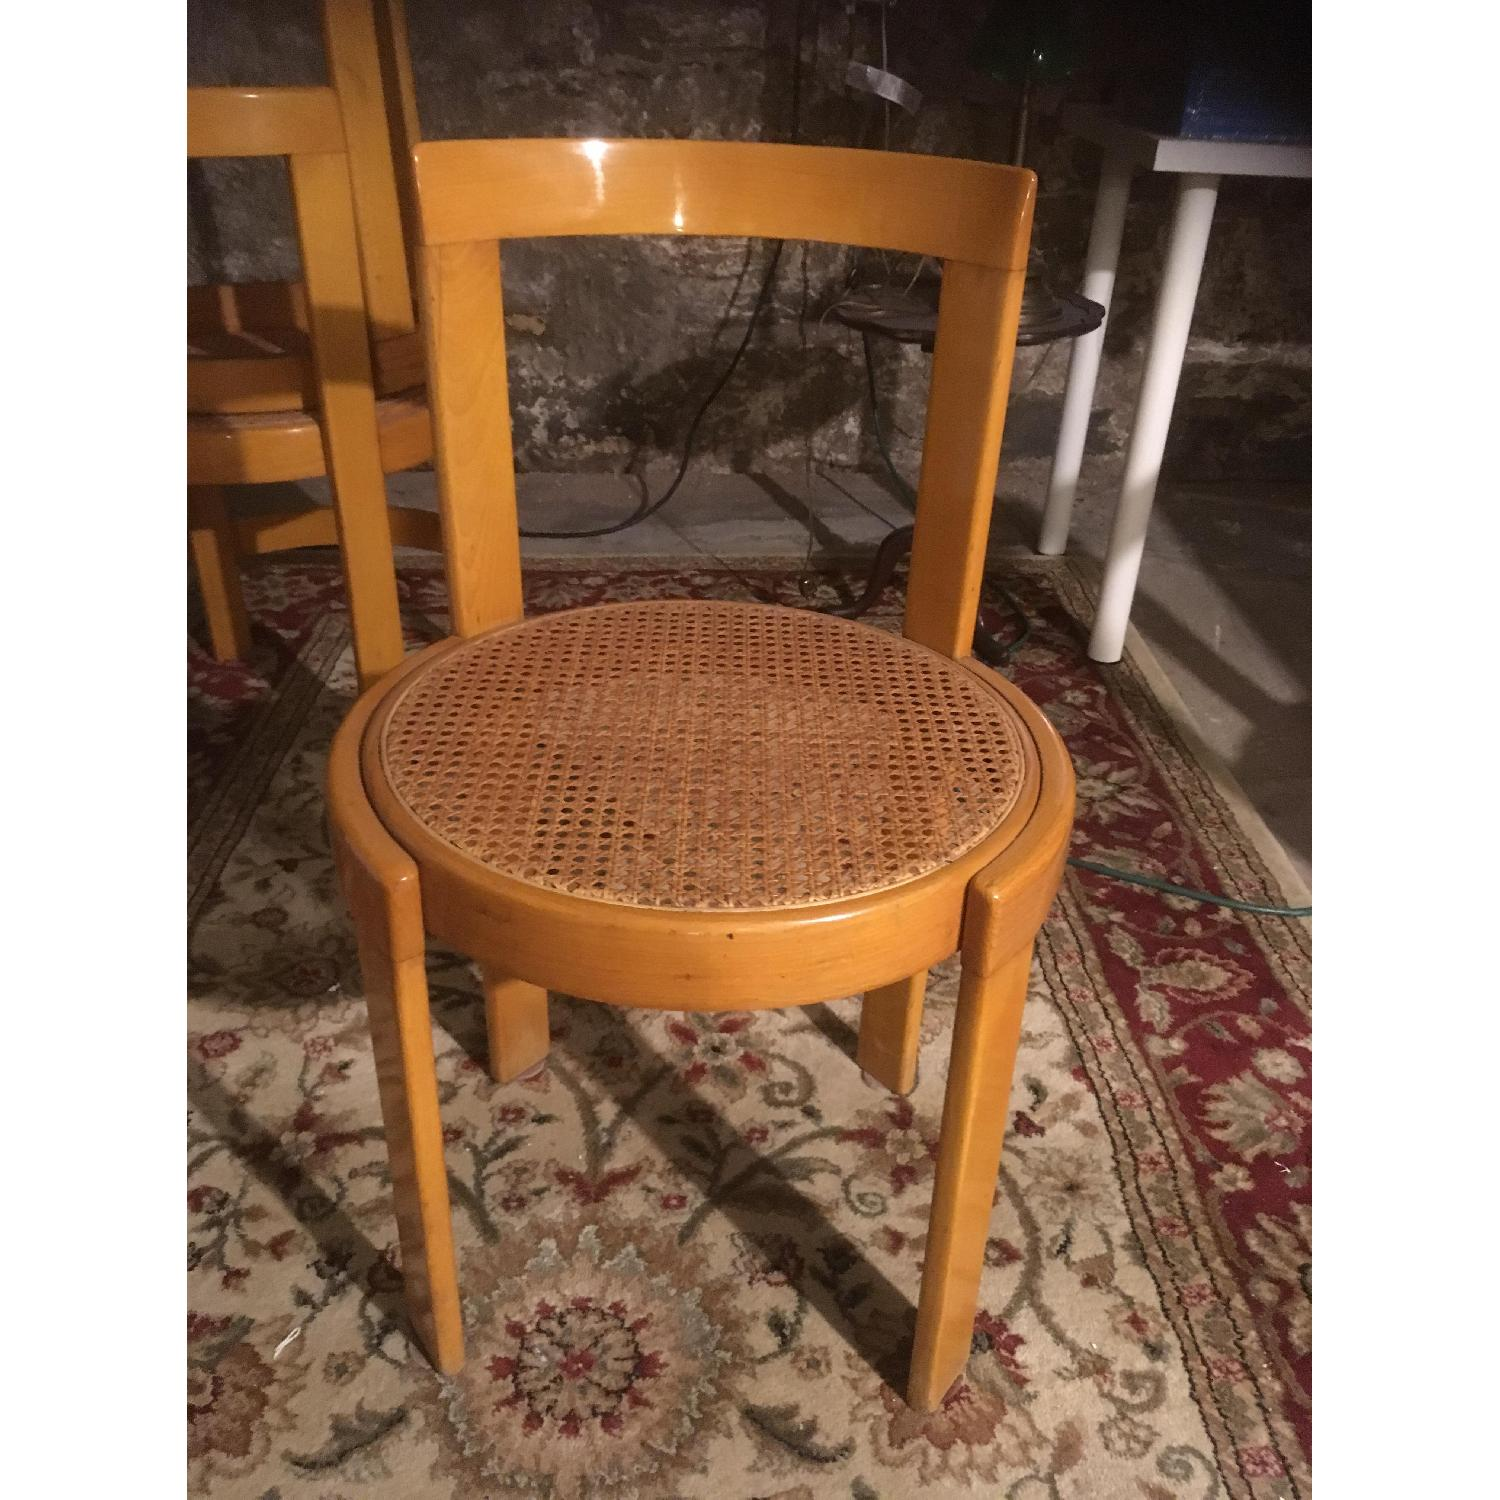 Thonet Italian Yellow Bent Wood Cane Seat Dining Chairs - image-3